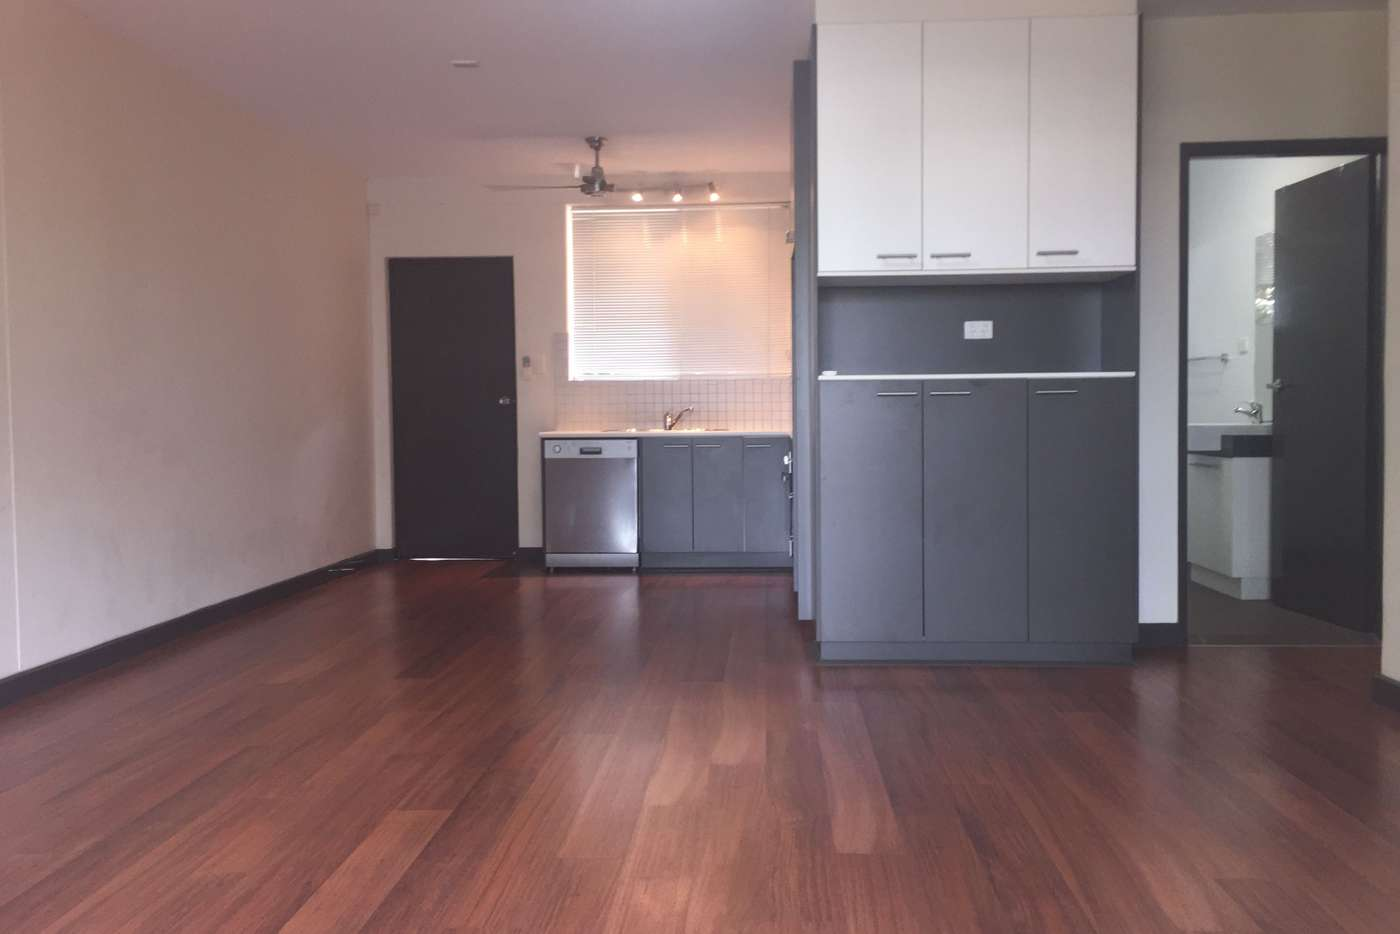 Main view of Homely unit listing, 3/16 Goldsmith Street, Parap NT 820